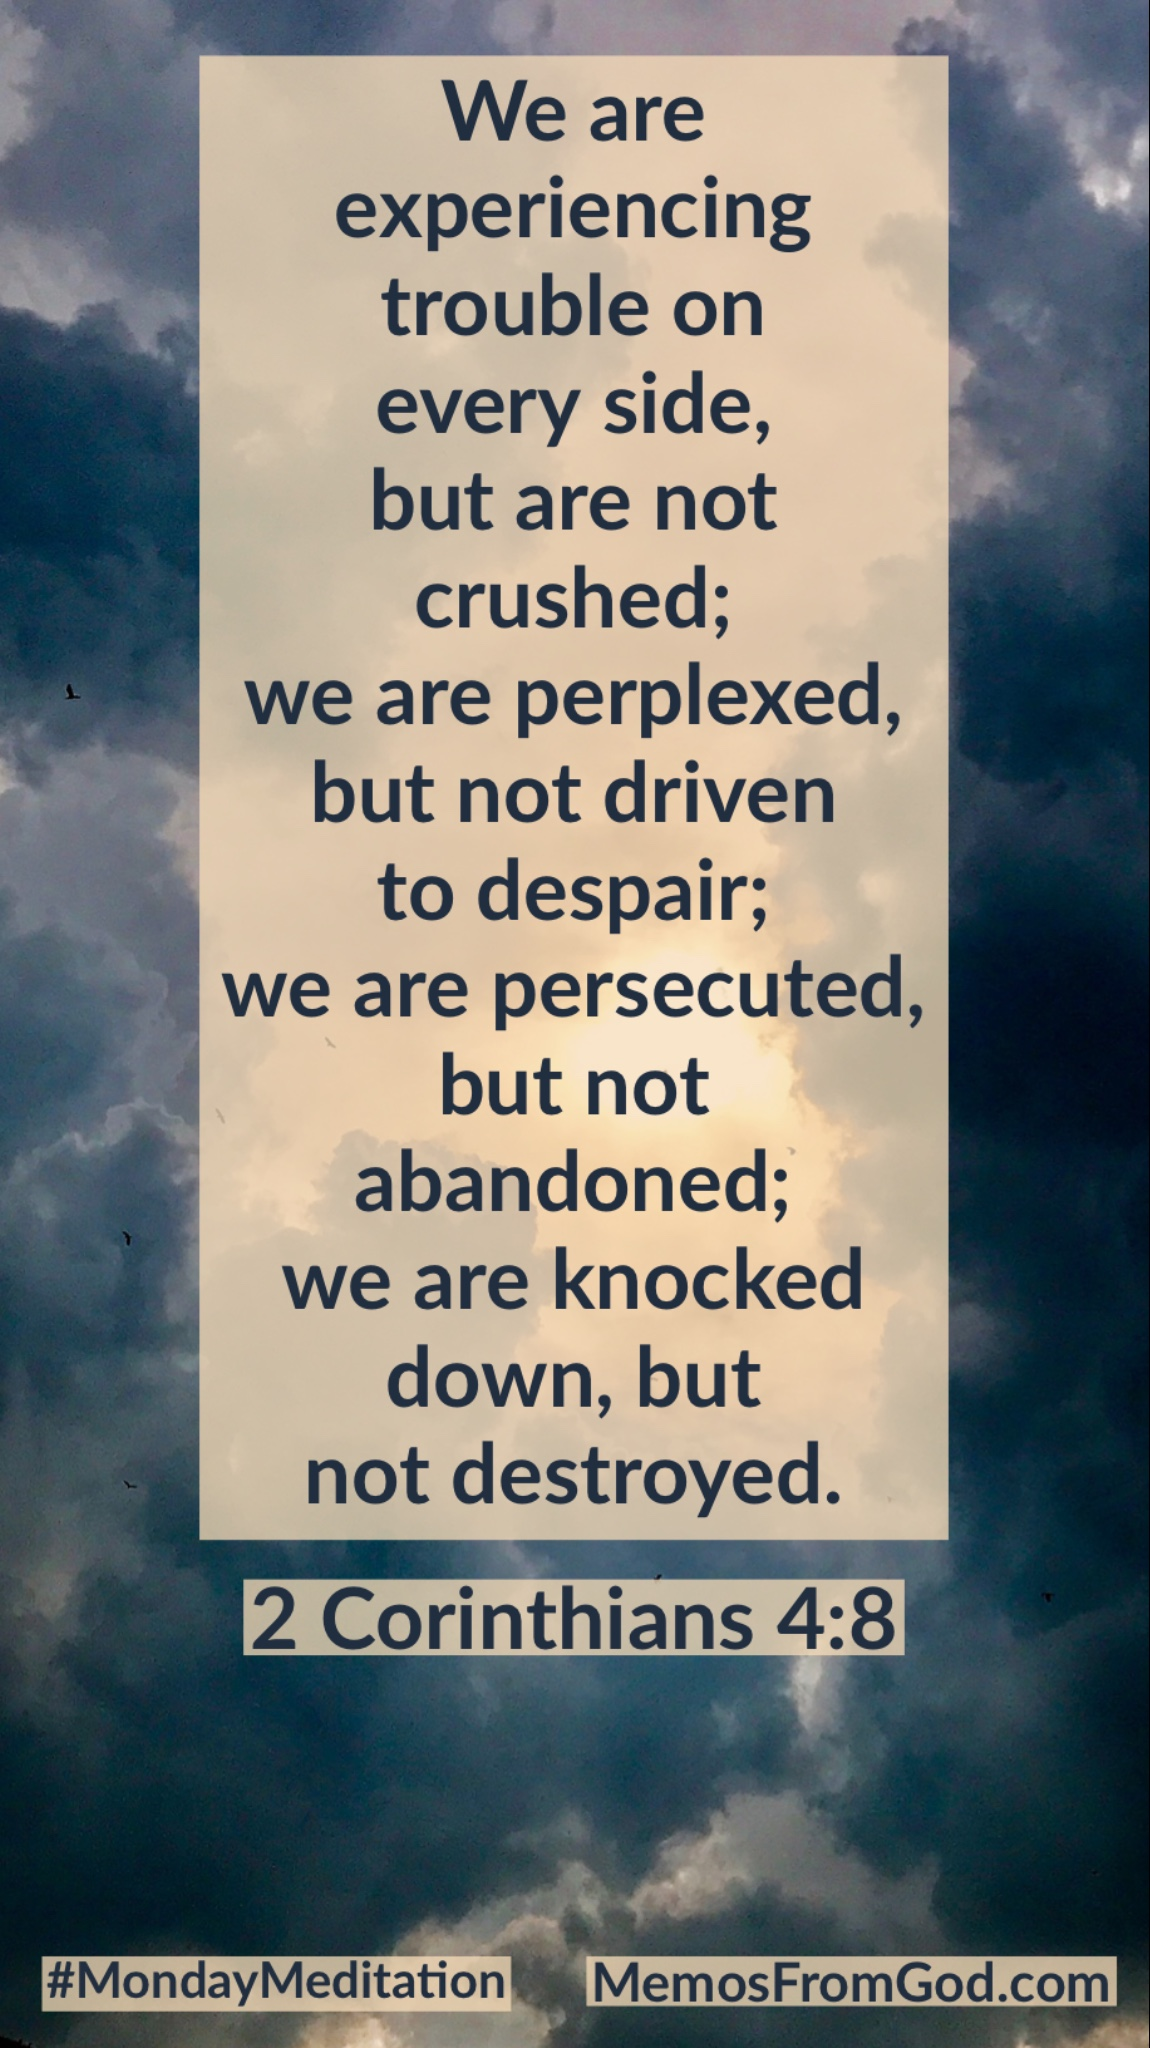 We are experiencing trouble on every side, but are not crushed; we are perplexed, but not driven to despair; we are persecuted, but not abandoned; we are knocked down, but not destroyed. 2 Corinthians 4:8